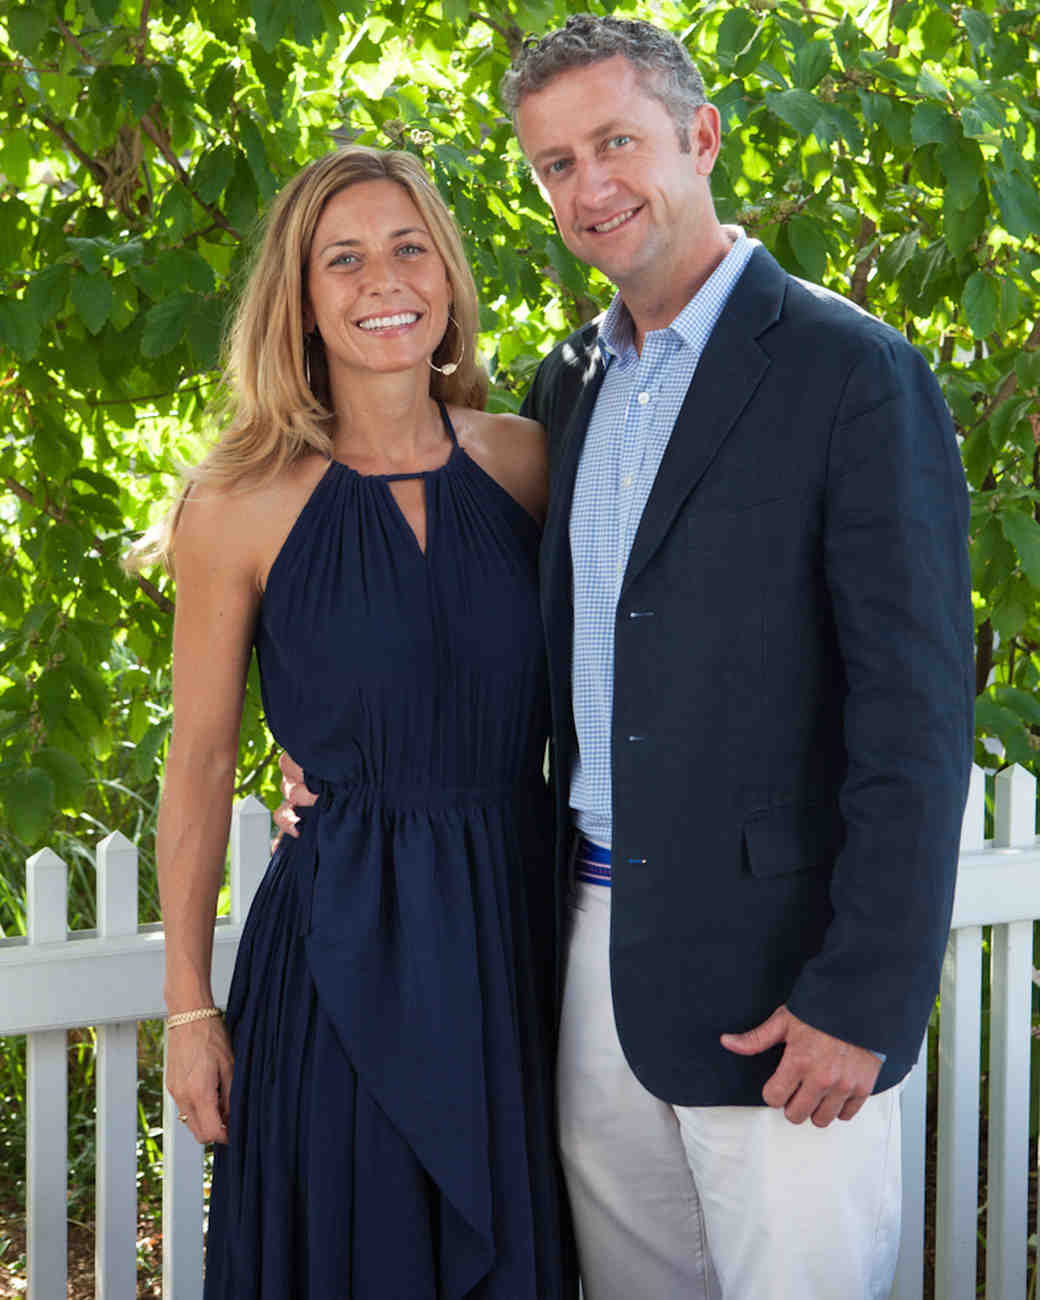 Gillian and William's Nautical New England Rehearsal Dinner ...